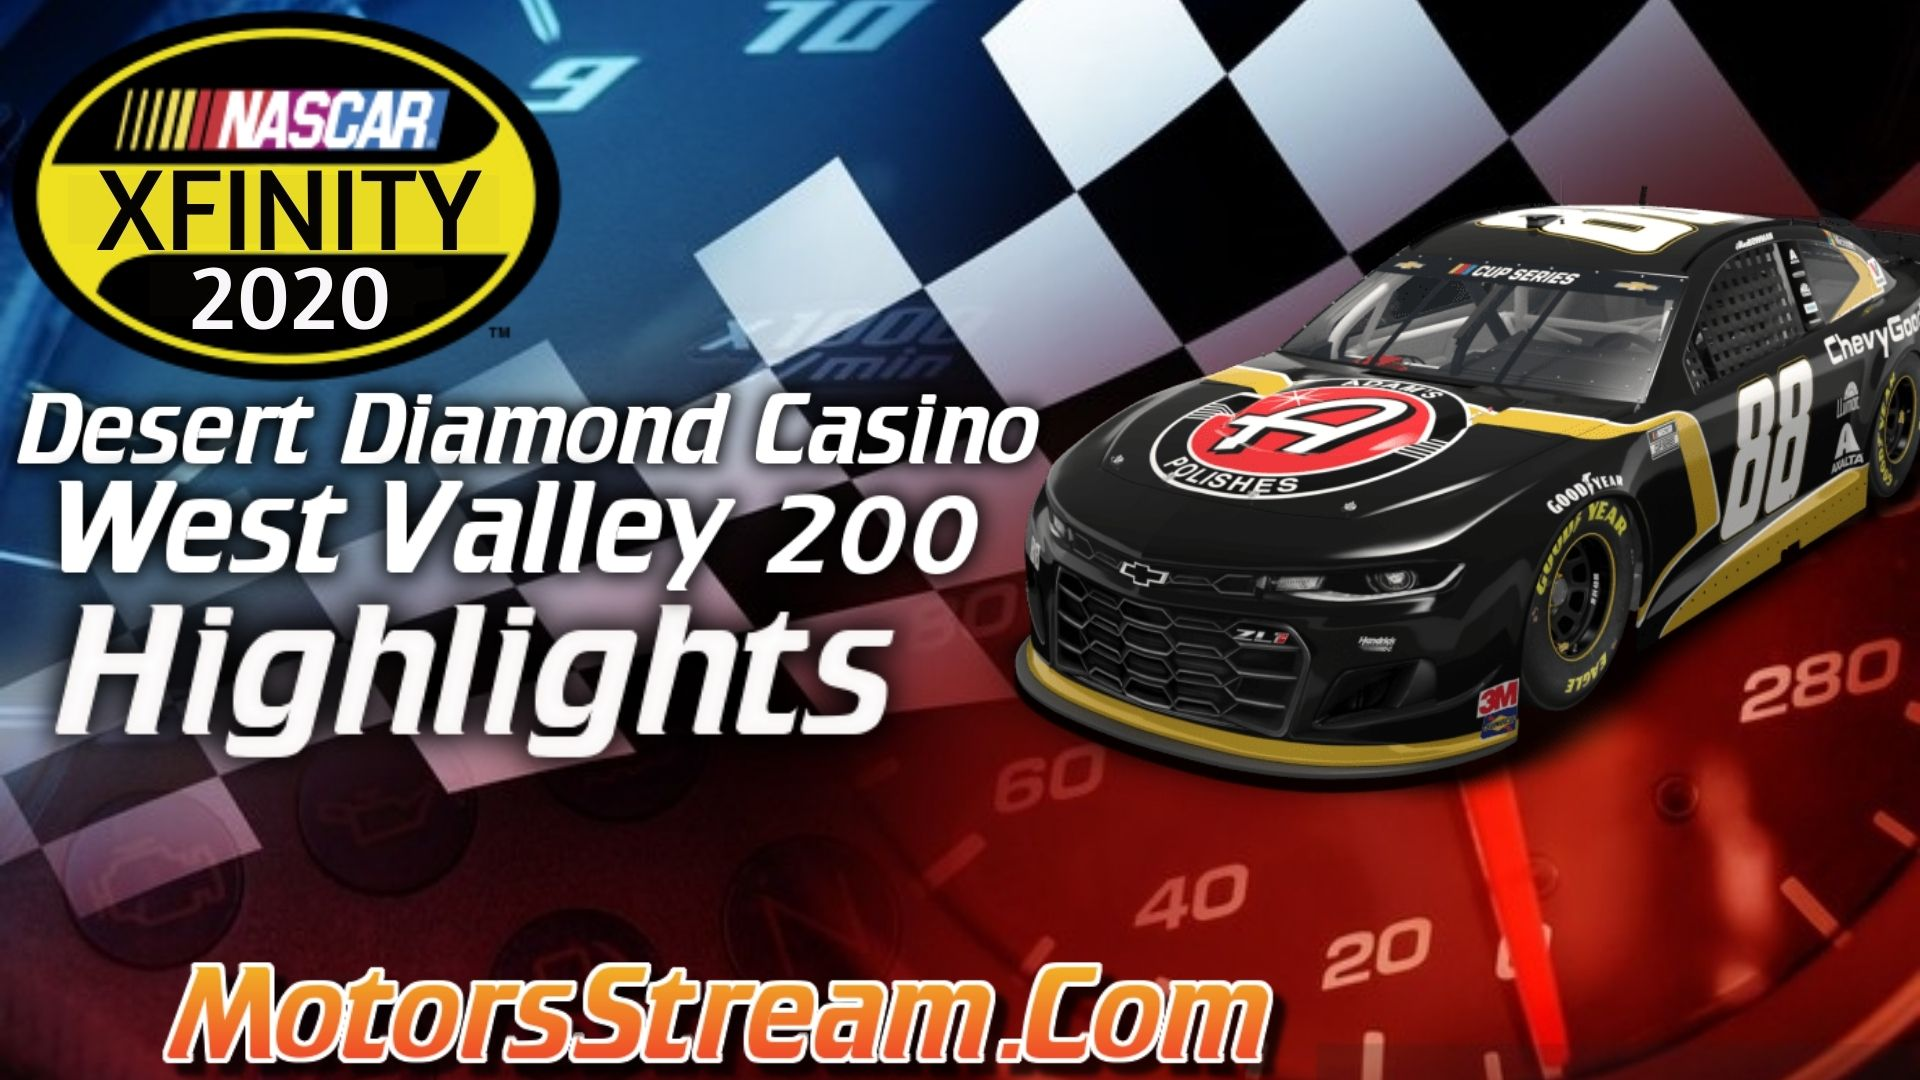 Desert Diamond Casino West Valley 200 Highlights 2020 NXS